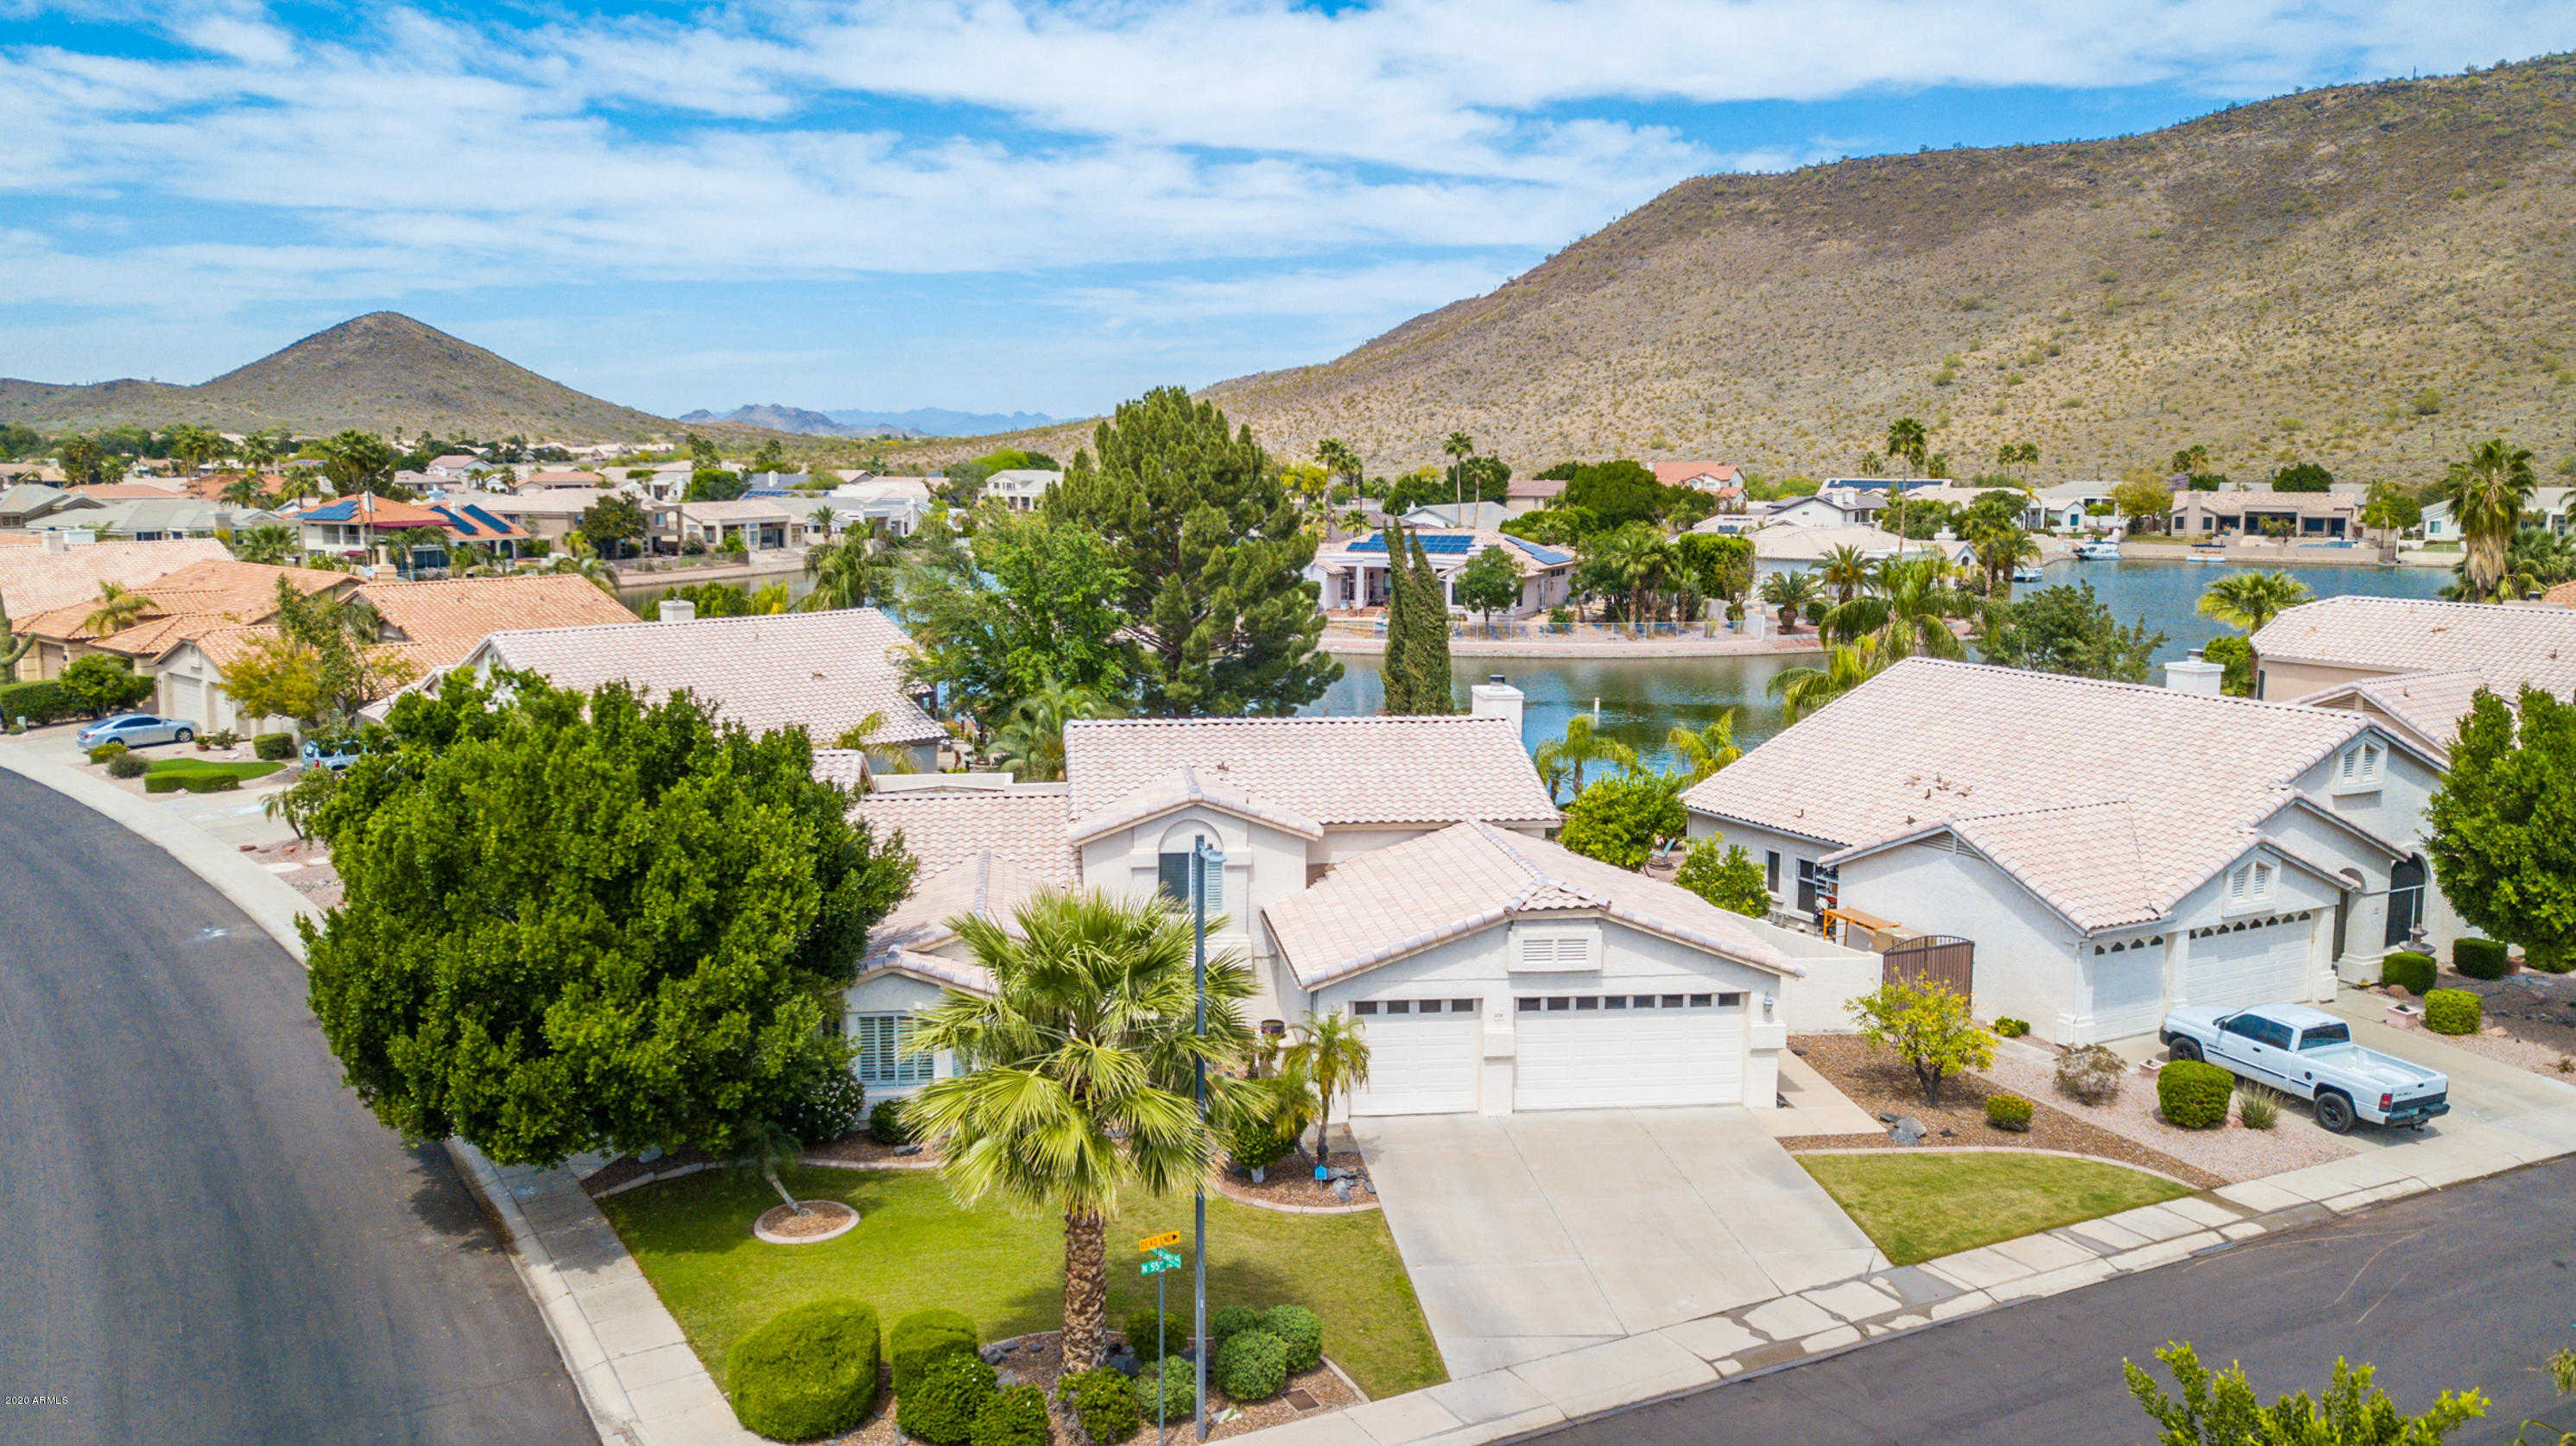 $750,000 - 4Br/3Ba - Home for Sale in Arrowhead Lakes Unit 4 Lot 1-59 Tr A, Glendale